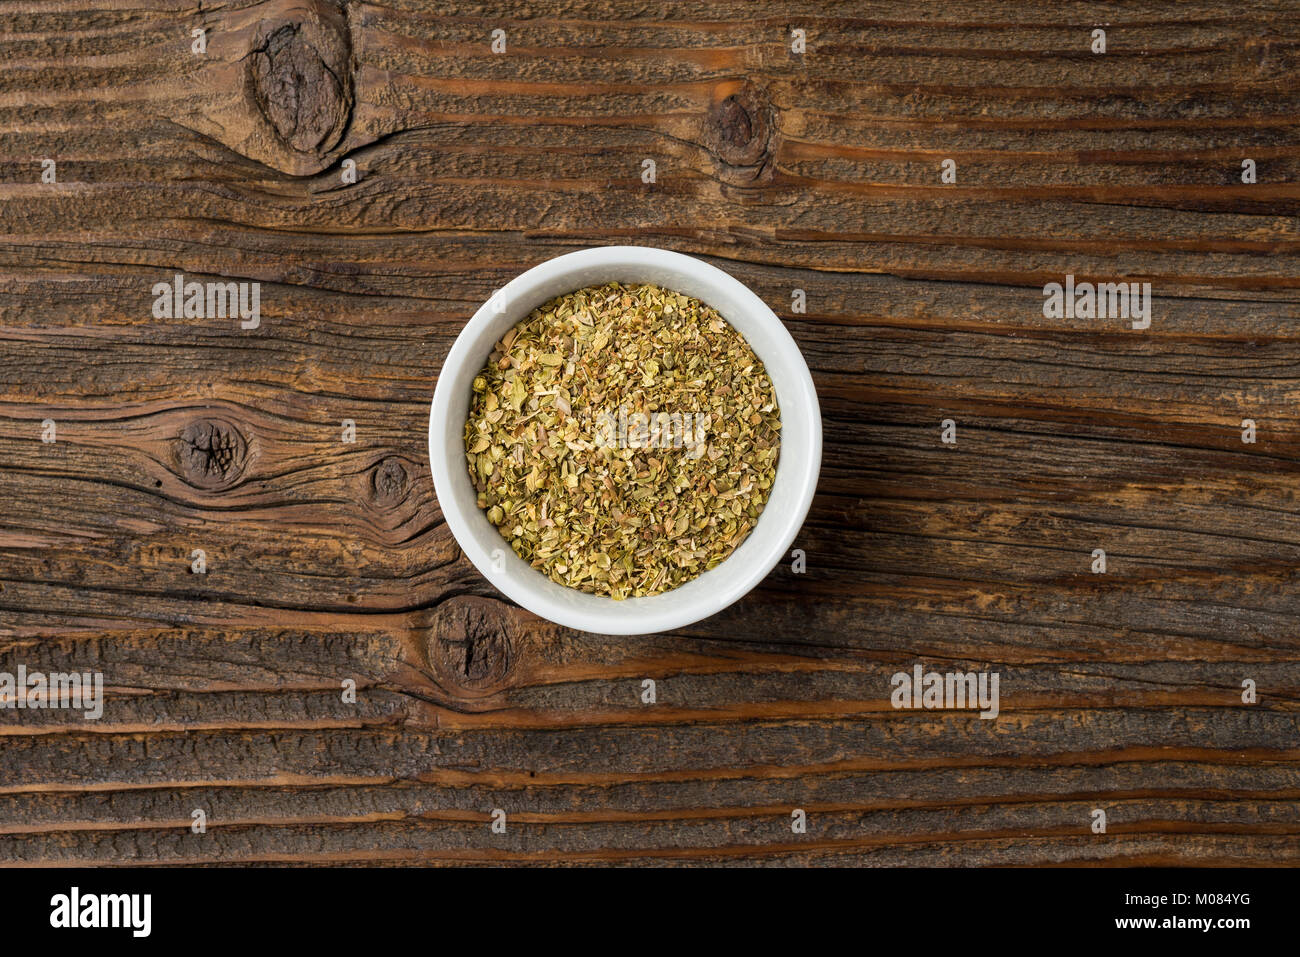 Dried marjoram in white bowl on an old wooden table - Stock Image